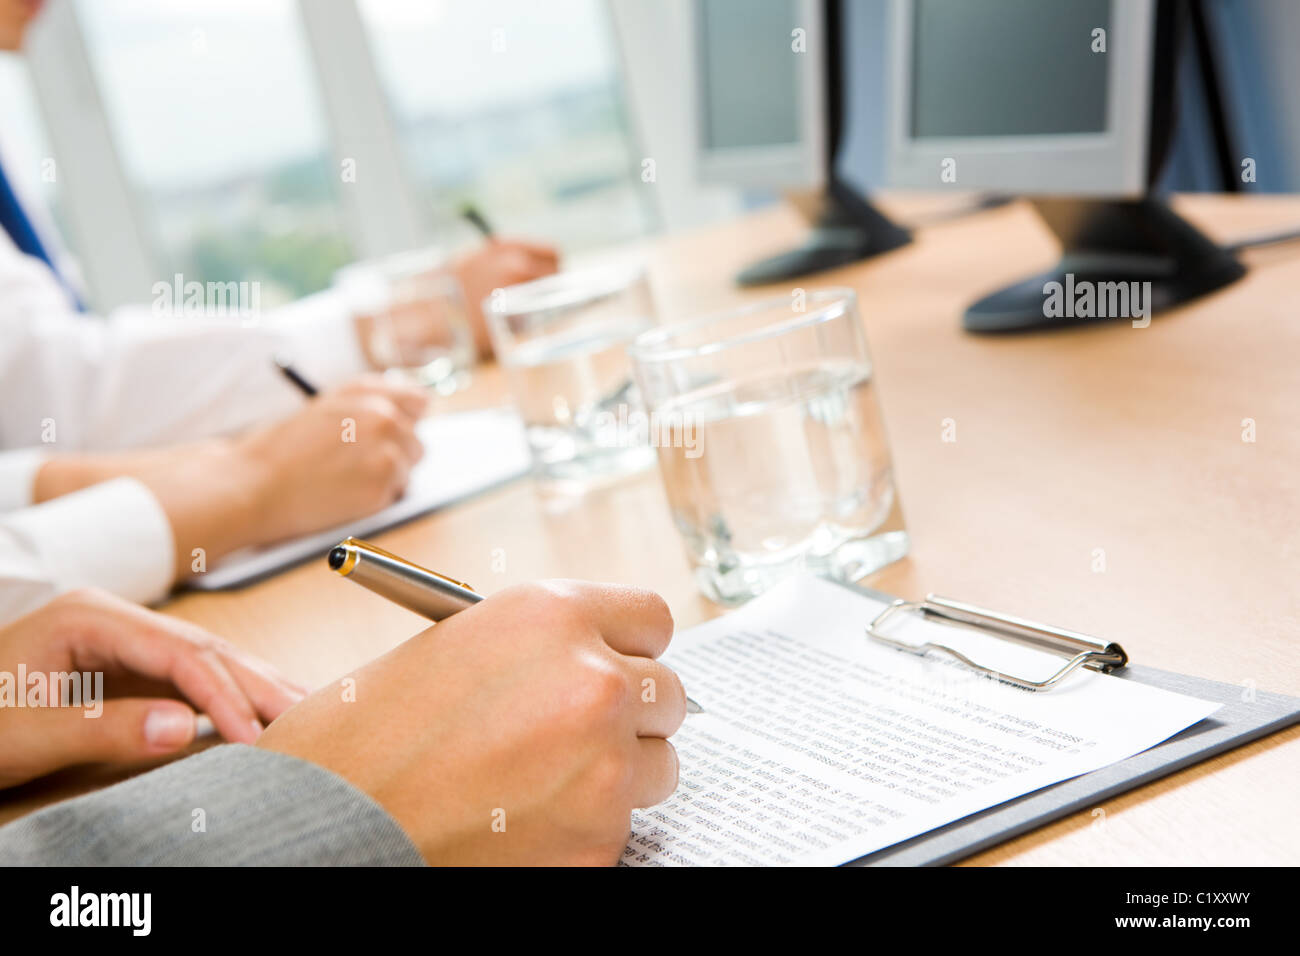 Image of human hand holding pen and making notes with glass of water and monitors near by - Stock Image